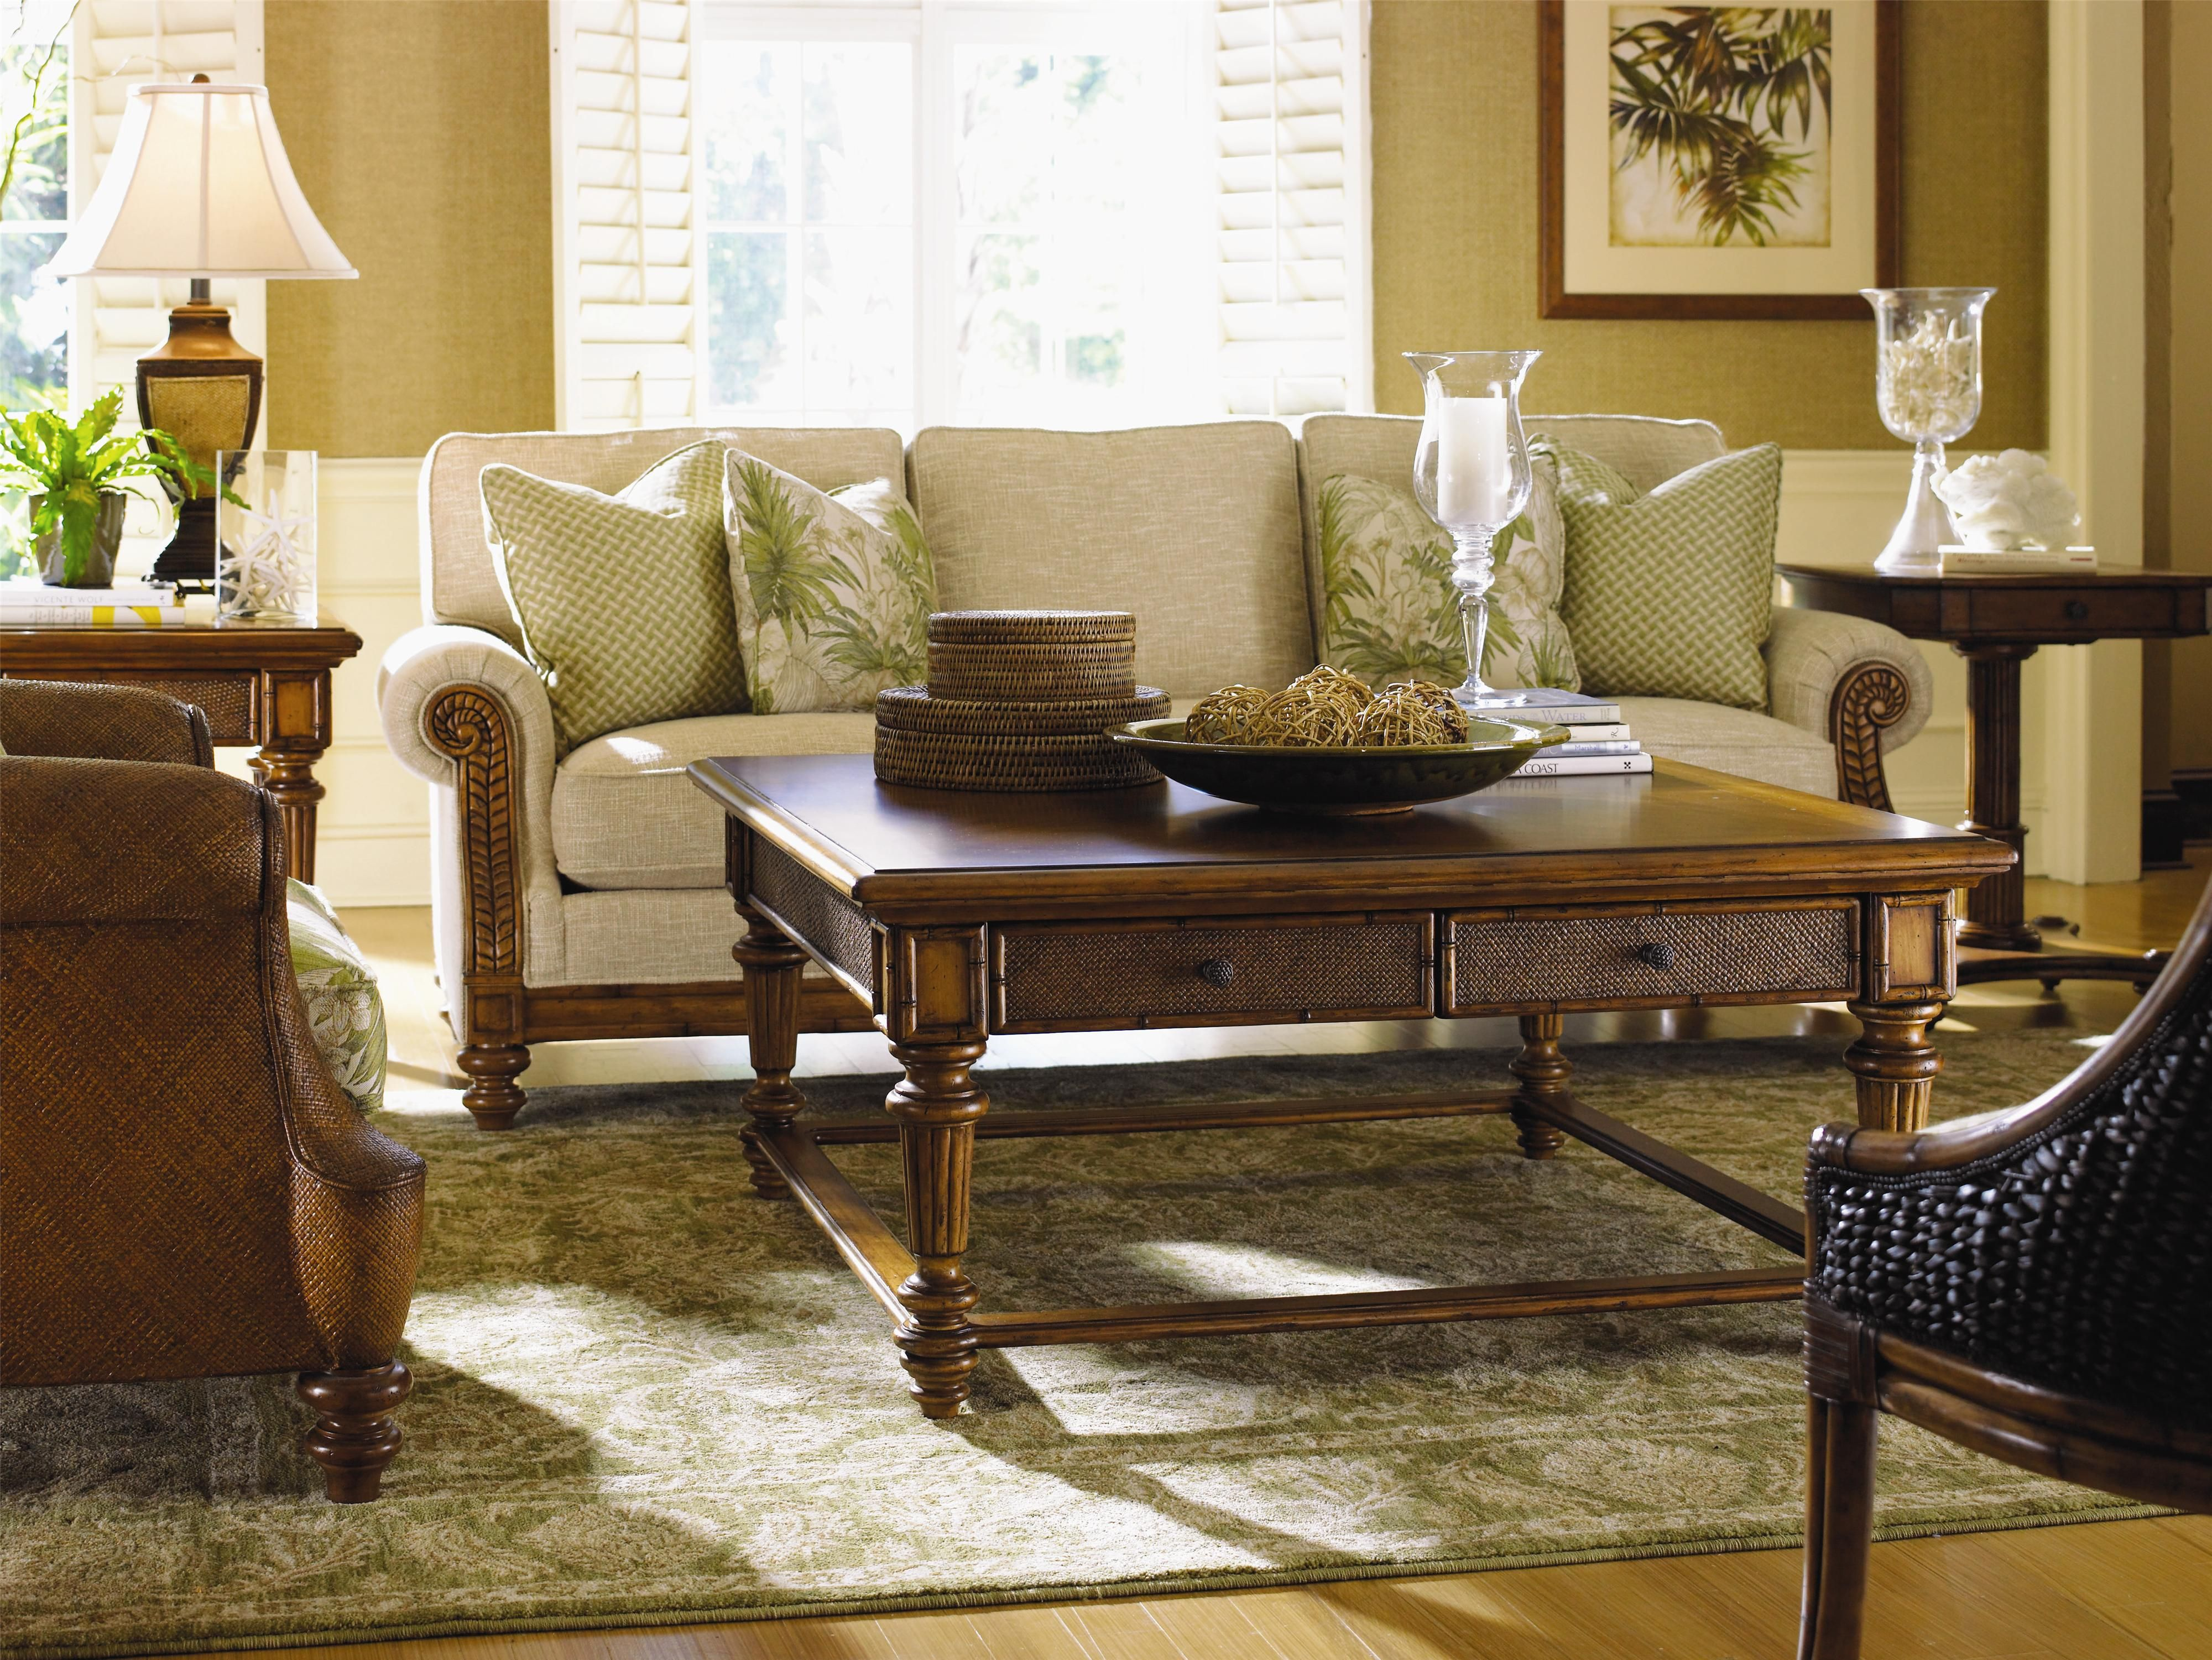 Pin On Pin To Win Tommy Bahama Home #tommy #bahama #living #room